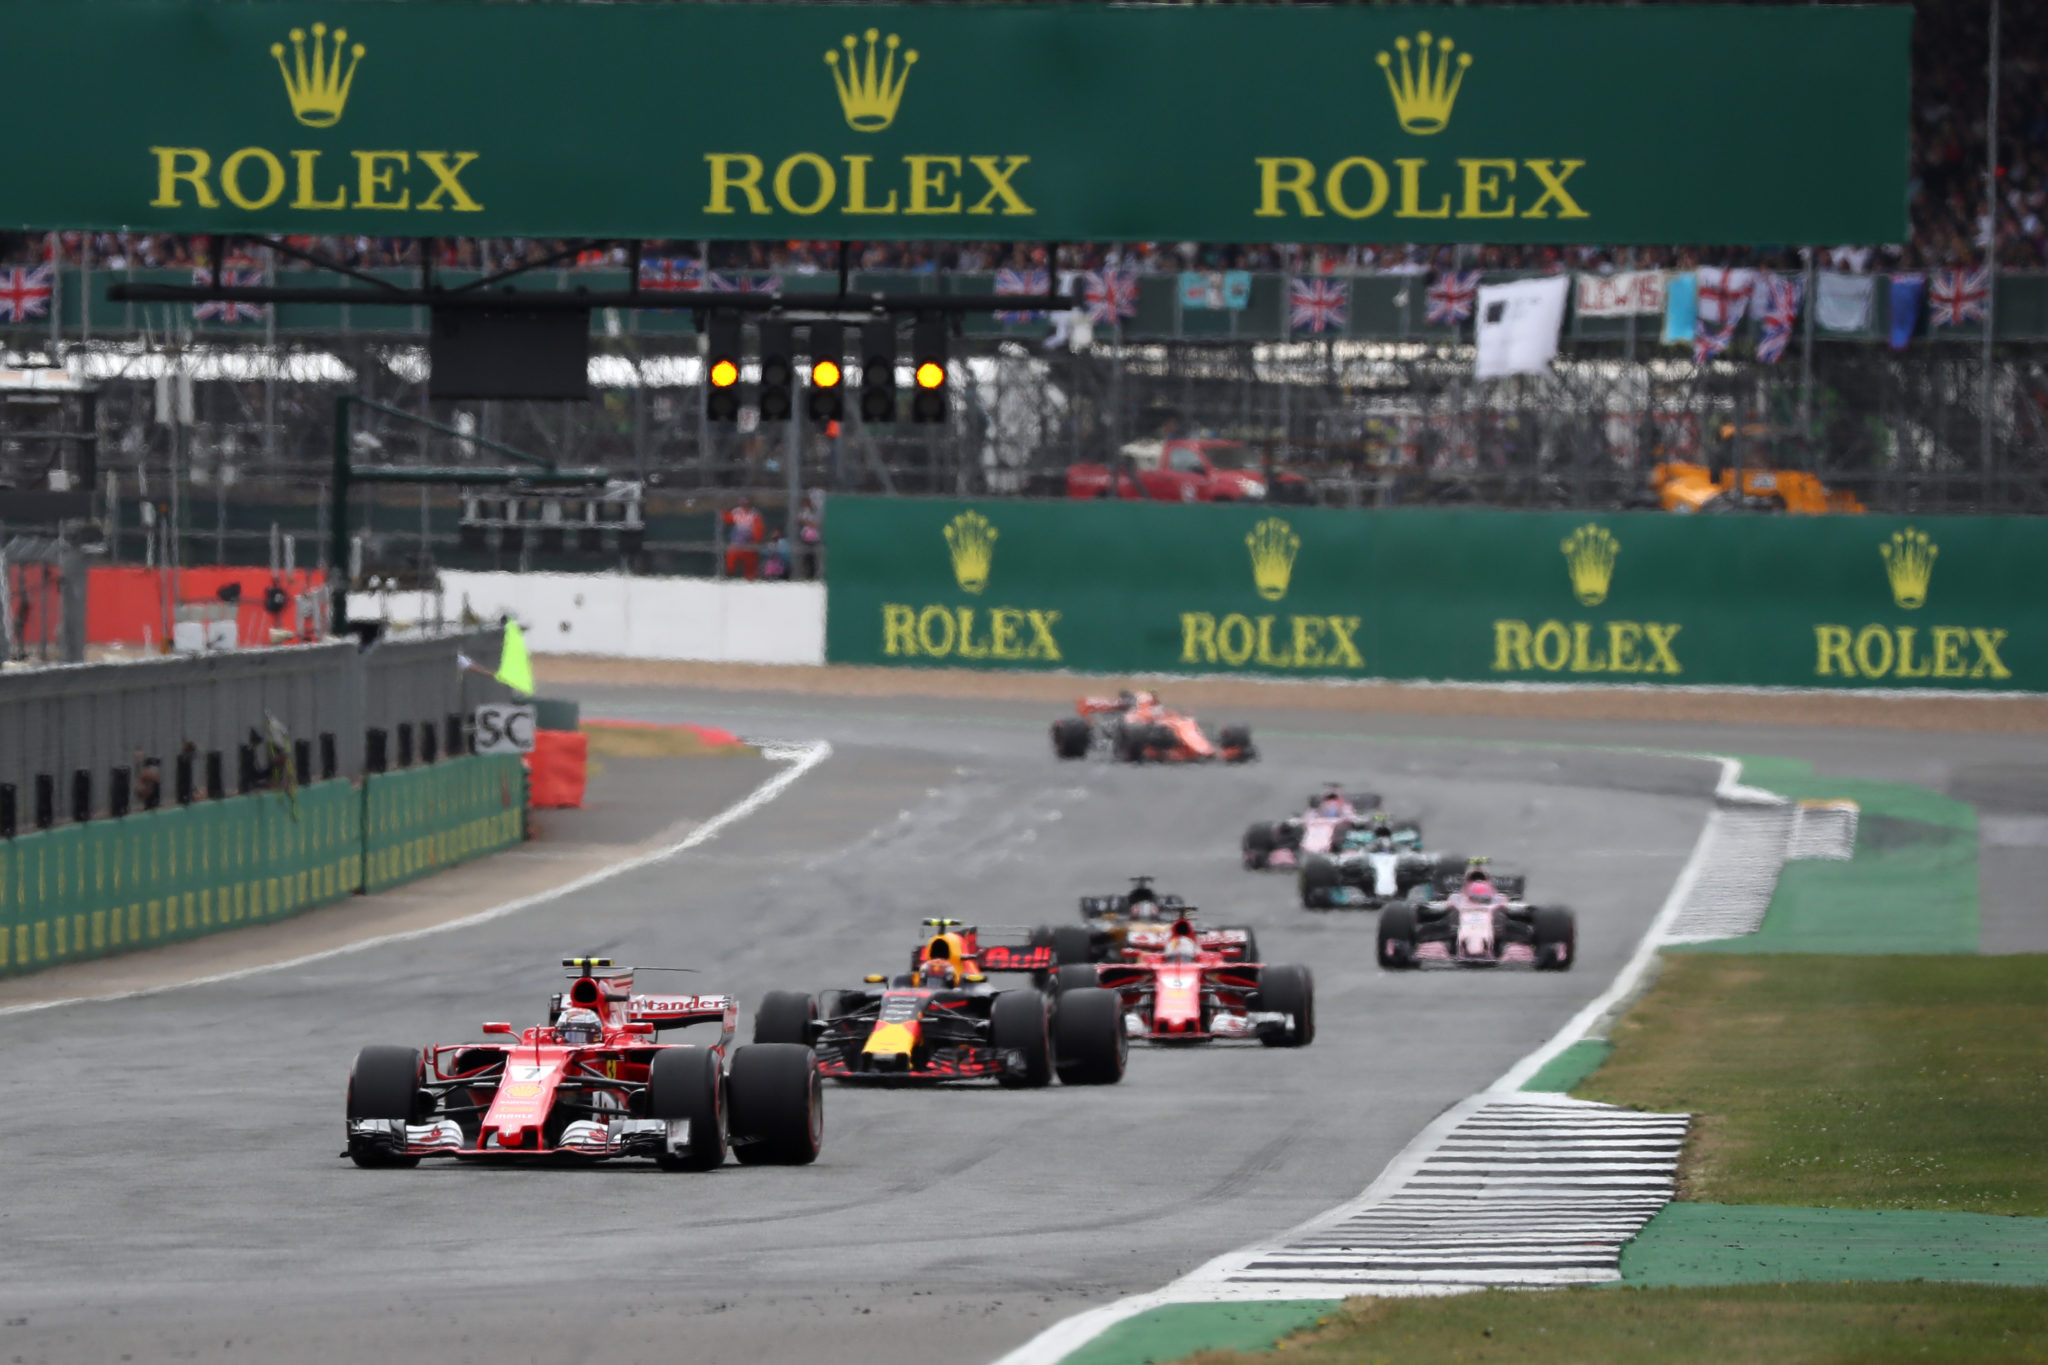 Rolex returns as title sponsor of the British Grand Prix on its 70th ...